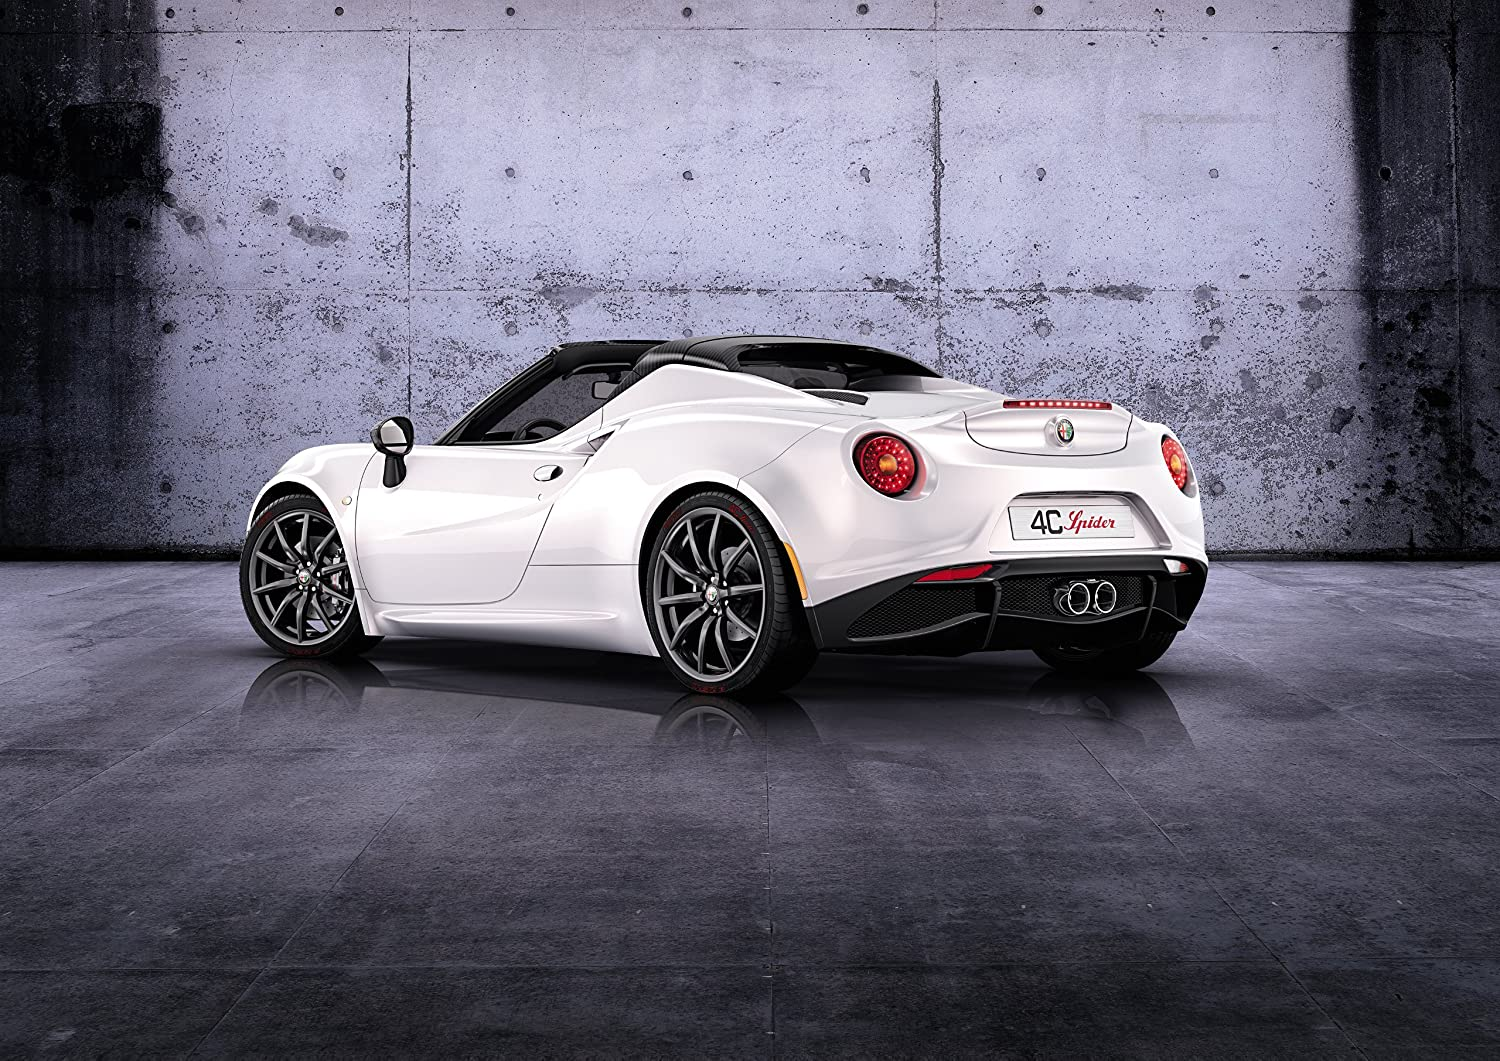 """Alfa Romeo 4C Spider (2014) Car Art Poster Print on 10 mil Archival Satin Paper White Rear Side Static View 36""""x24"""""""